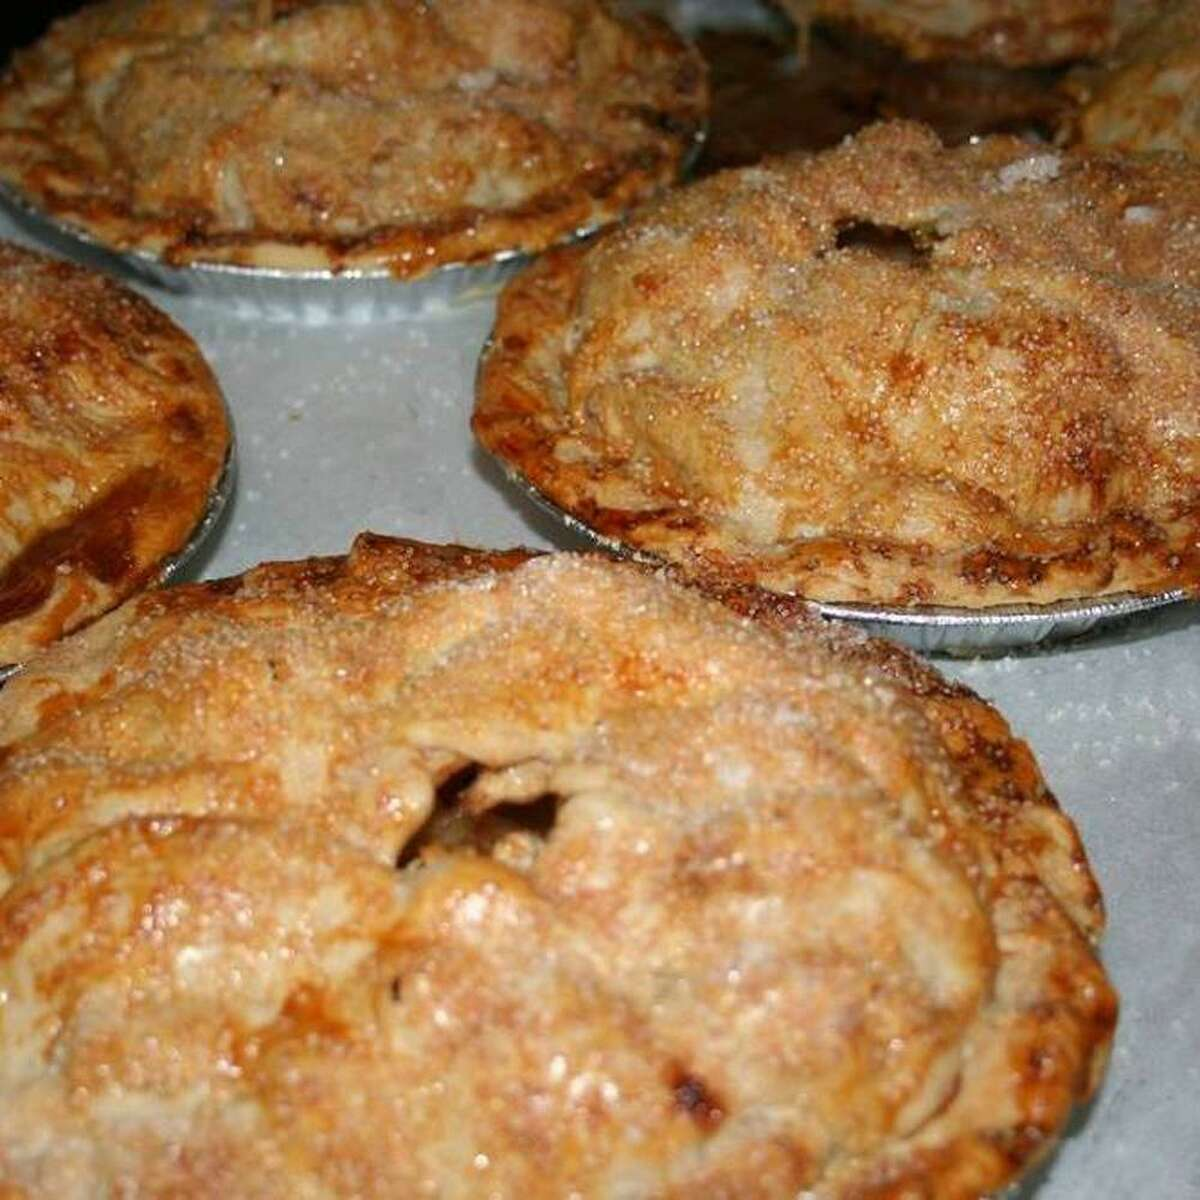 Pies at the Whistle Stop in Branchville look good and taste better.